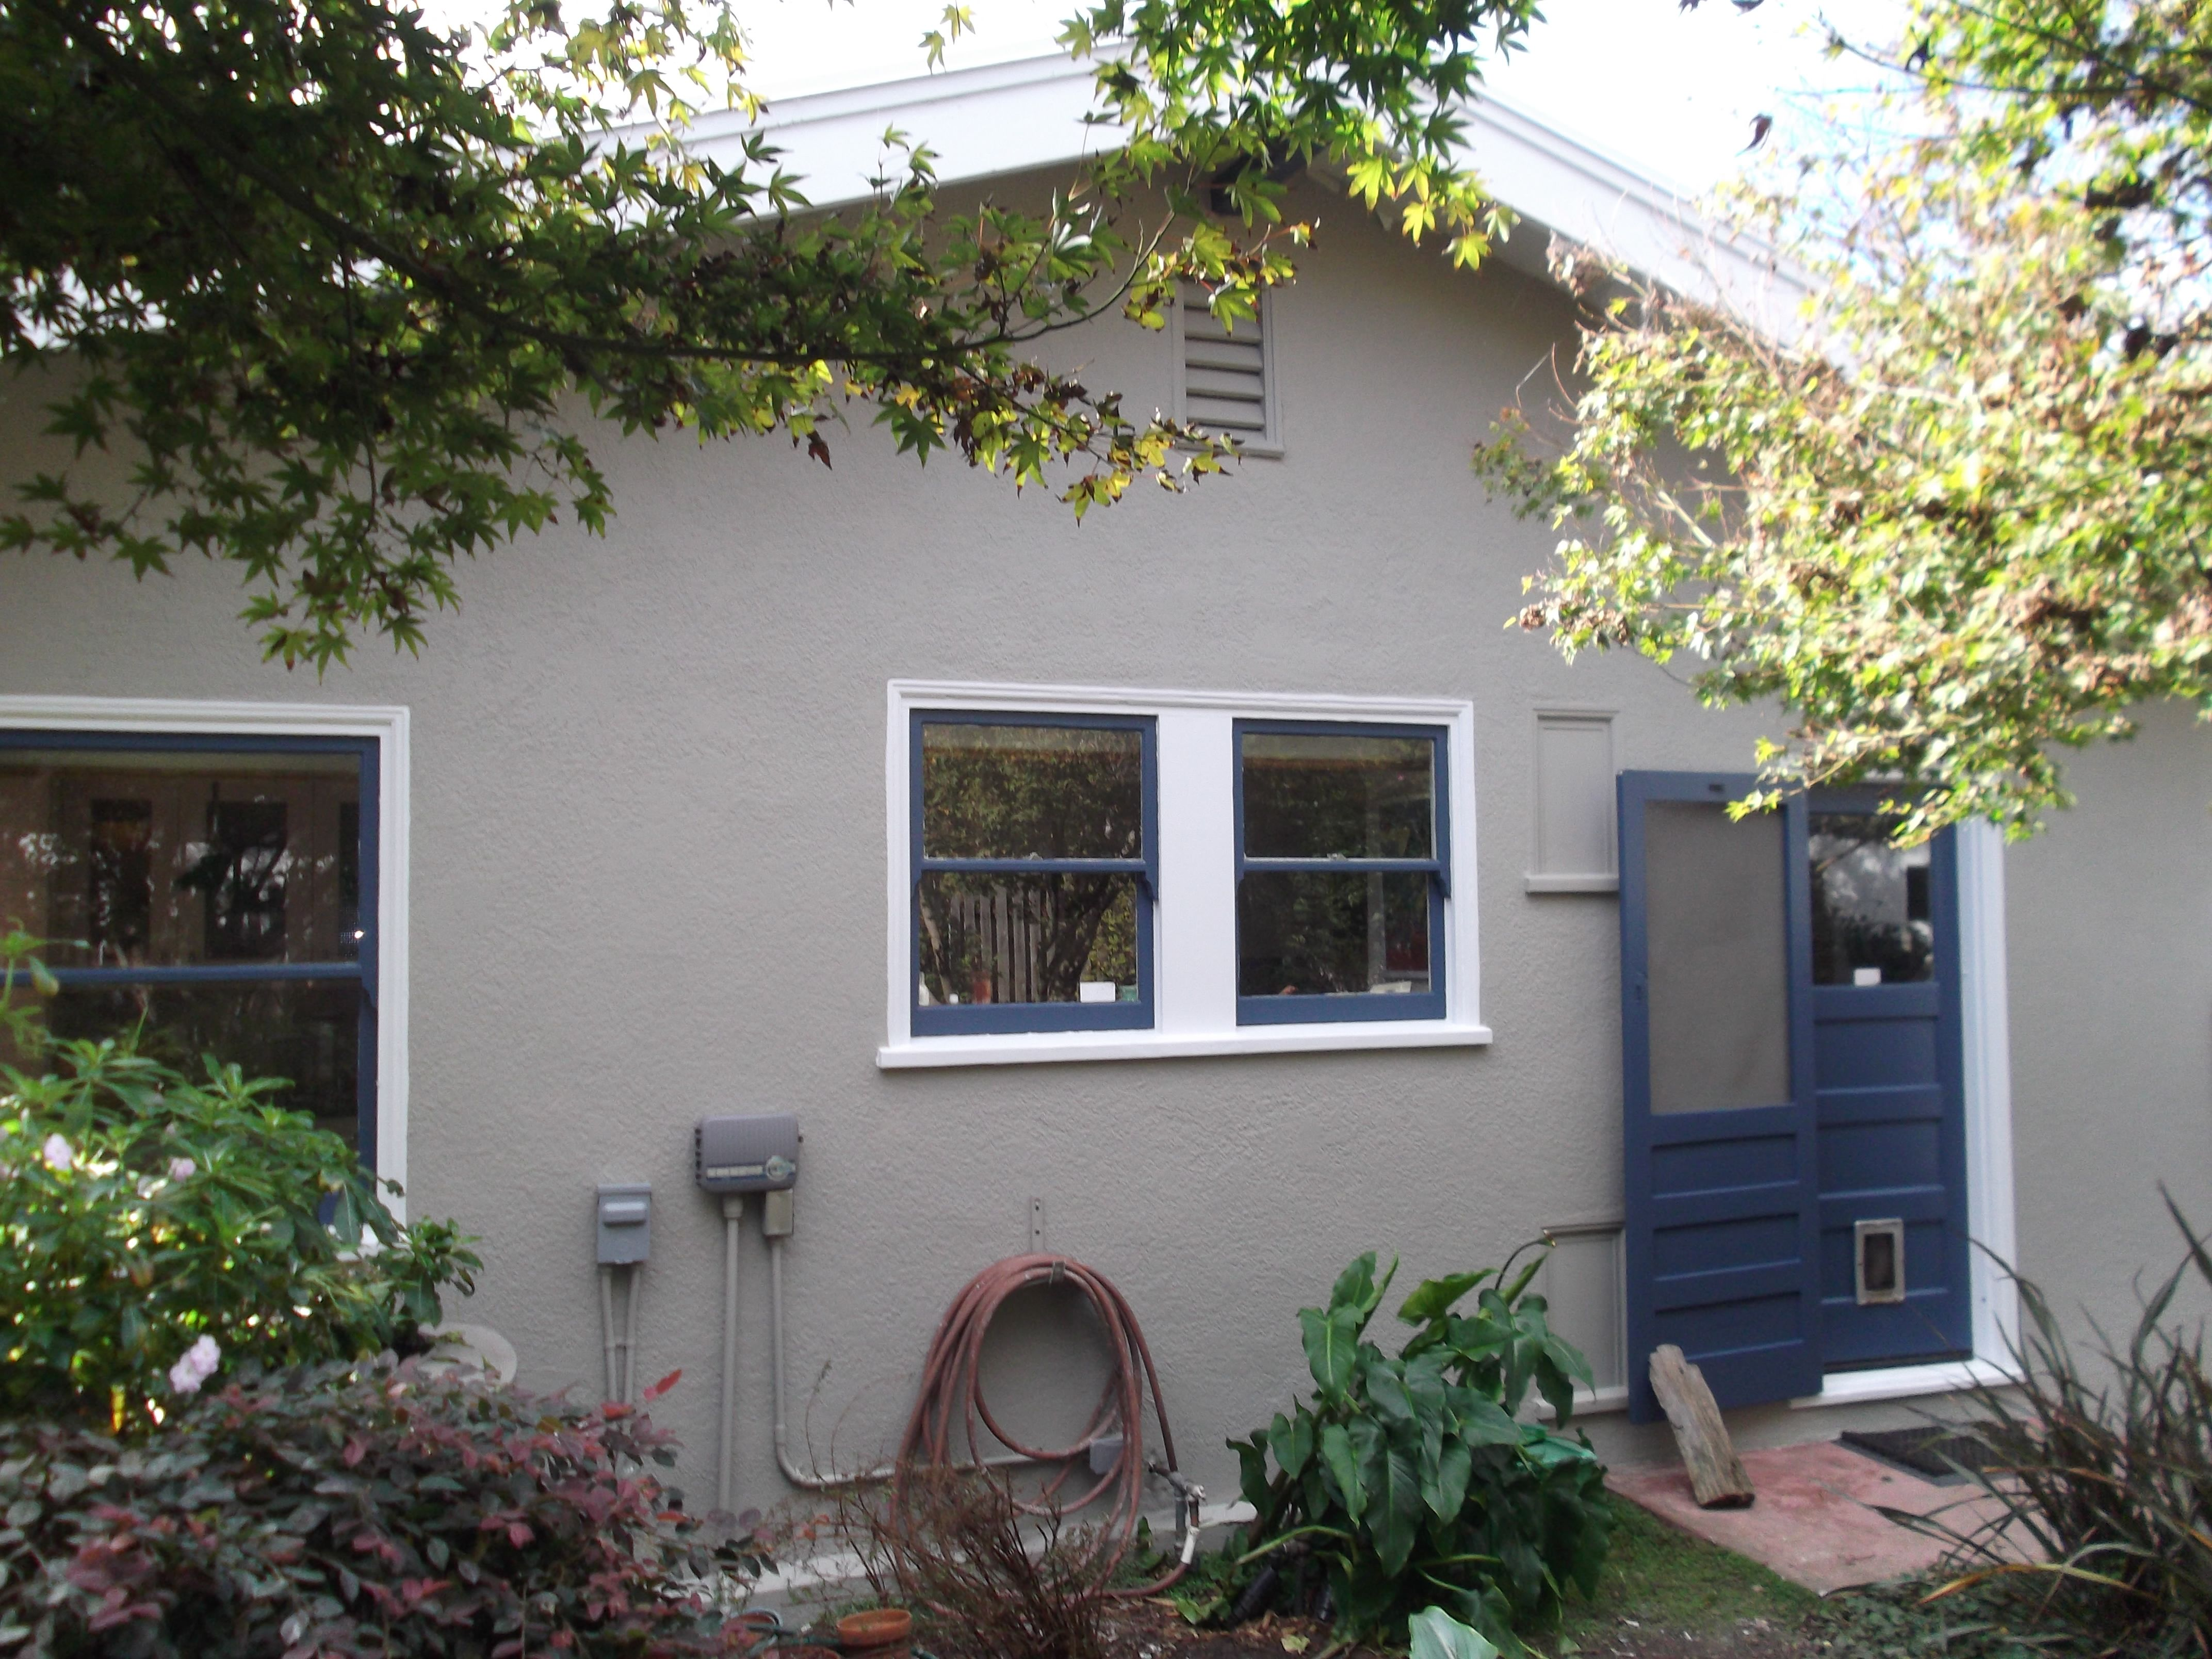 Benjamin Moore Exterior Paint Job Sandy Hook Grey Decorators White Exterior House Paint